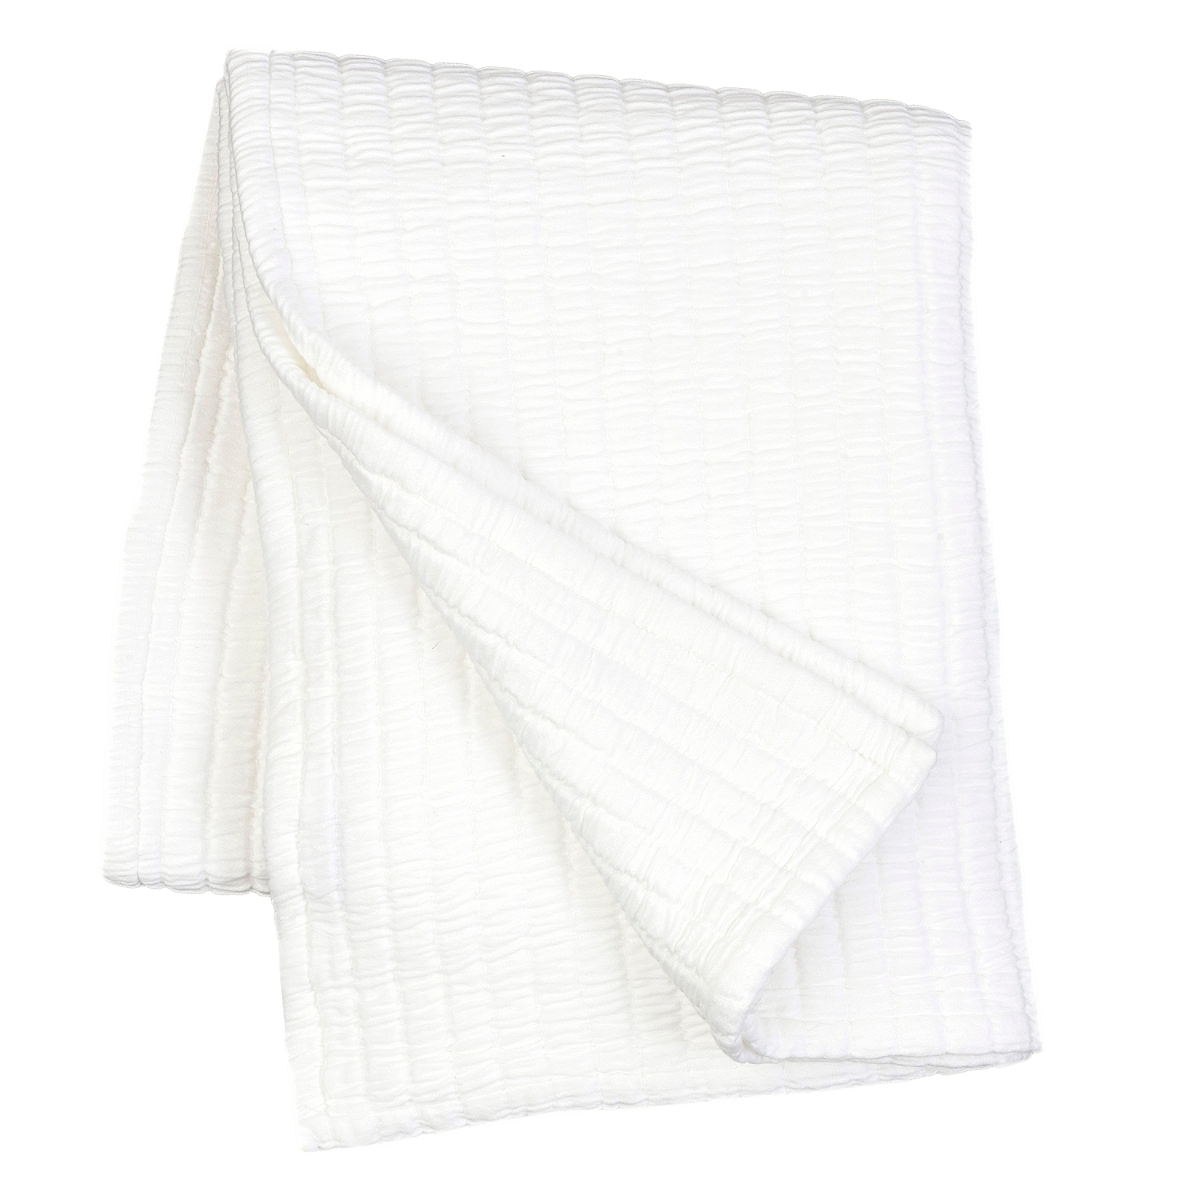 "Boyfriend White Matelasse Throw 50"" x 70"""